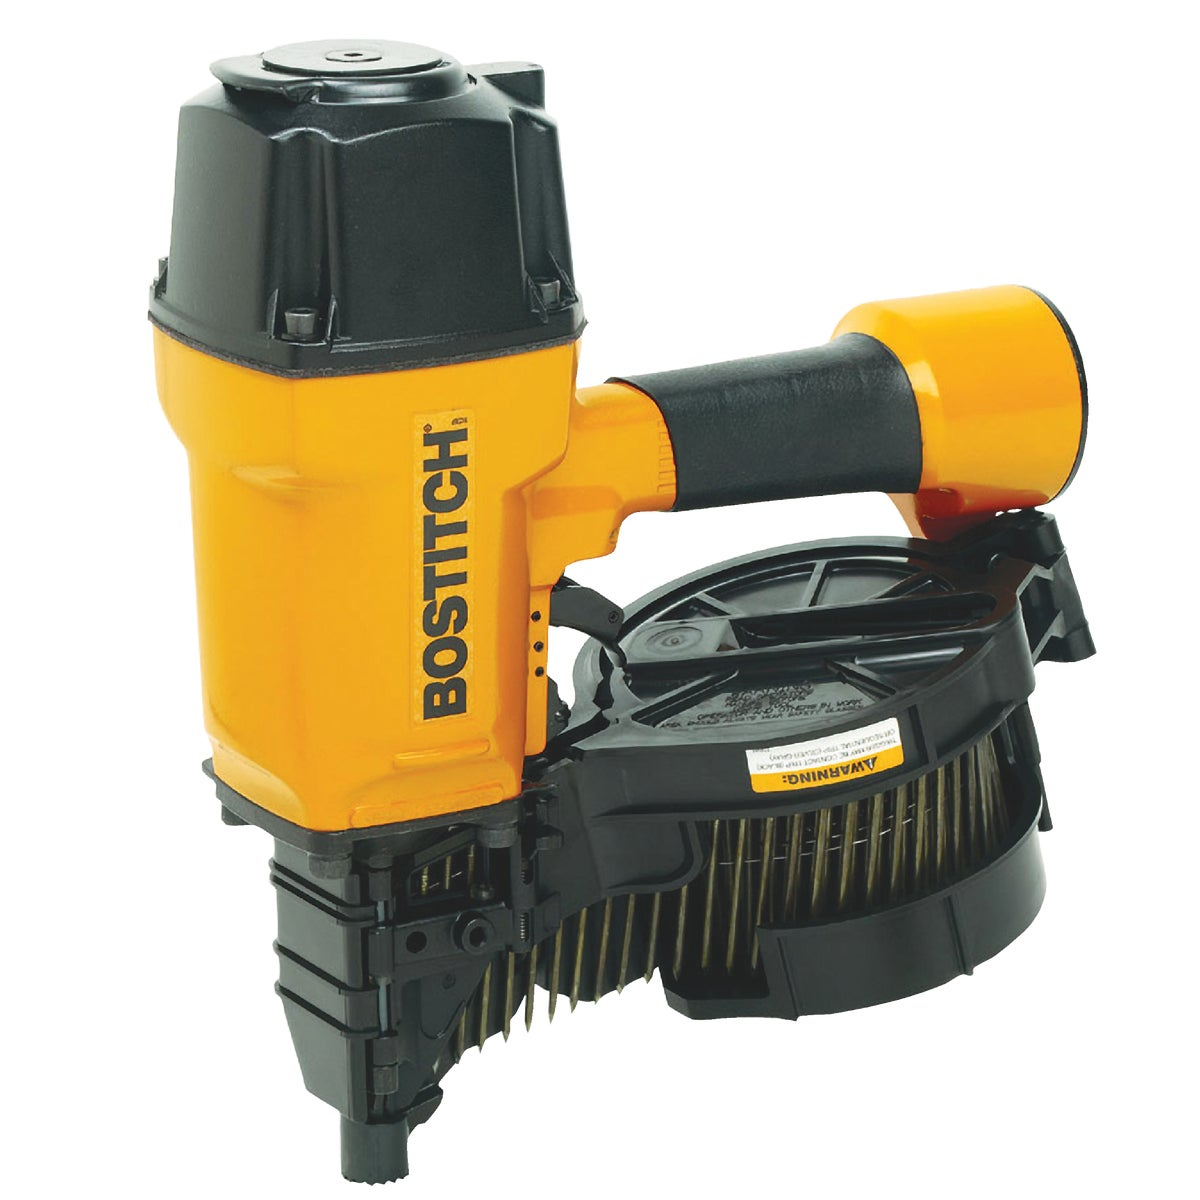 COIL FRAMING NAILER - N80CB-1 by Stanley Bostitch